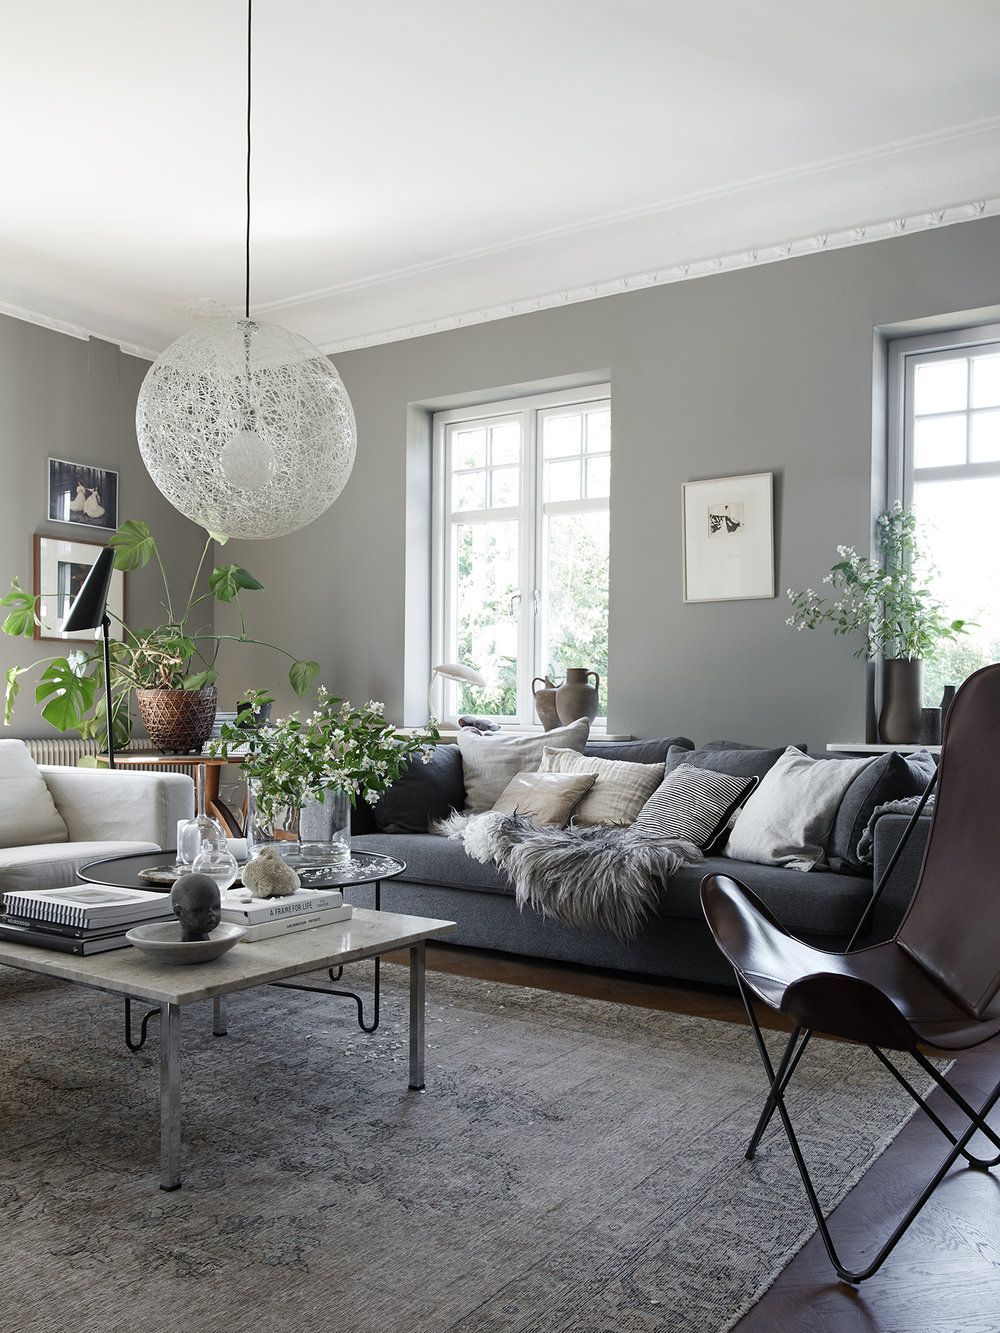 Daniella witte living area house inside room interior rooms first also vacation time in beautiful pinterest home rh